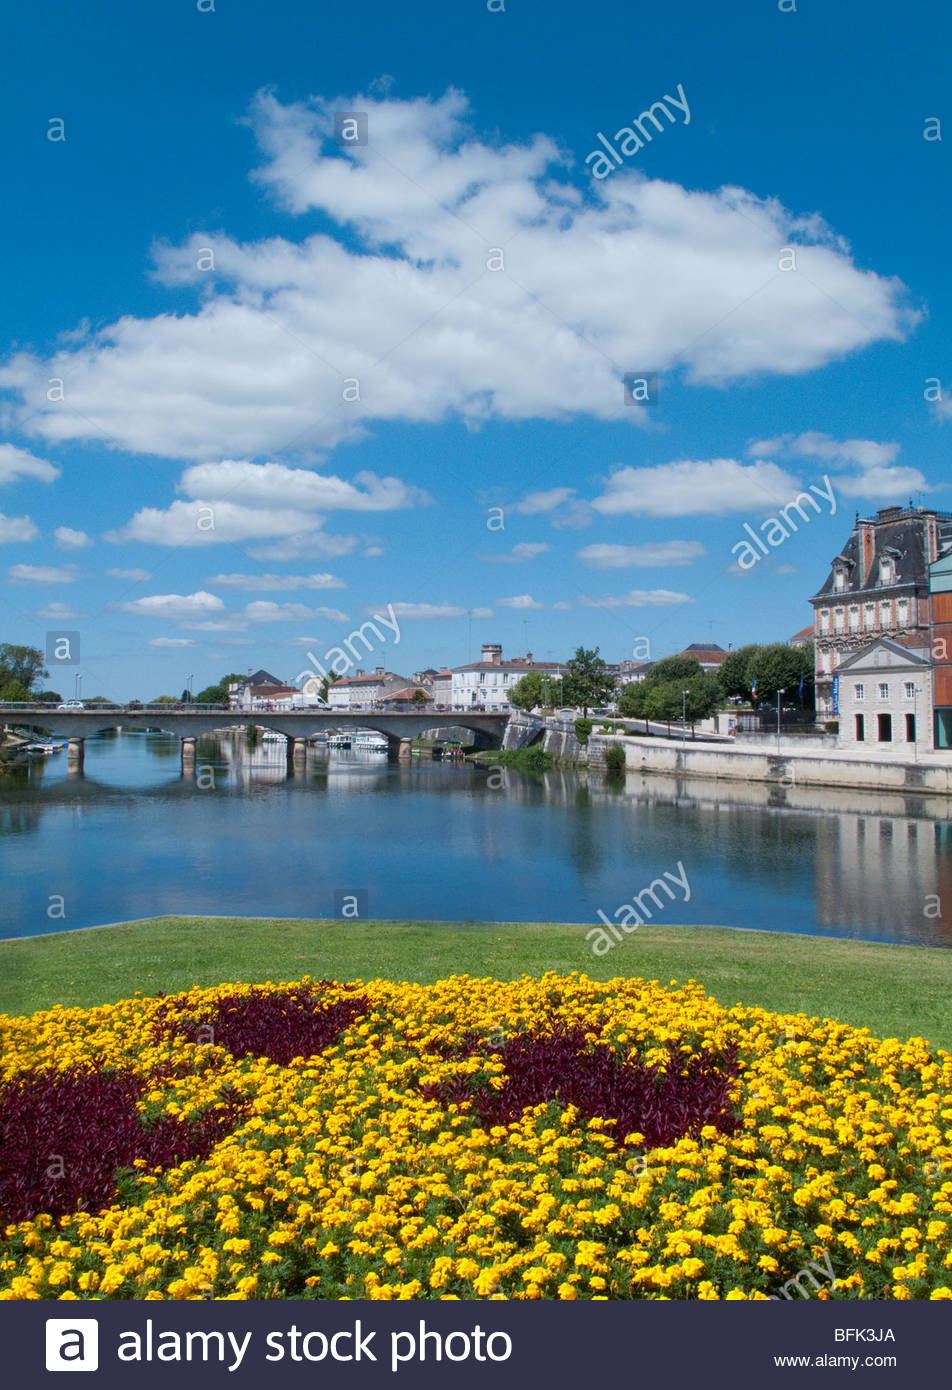 View of town and bridge spanning river on sunny day Stock Photo